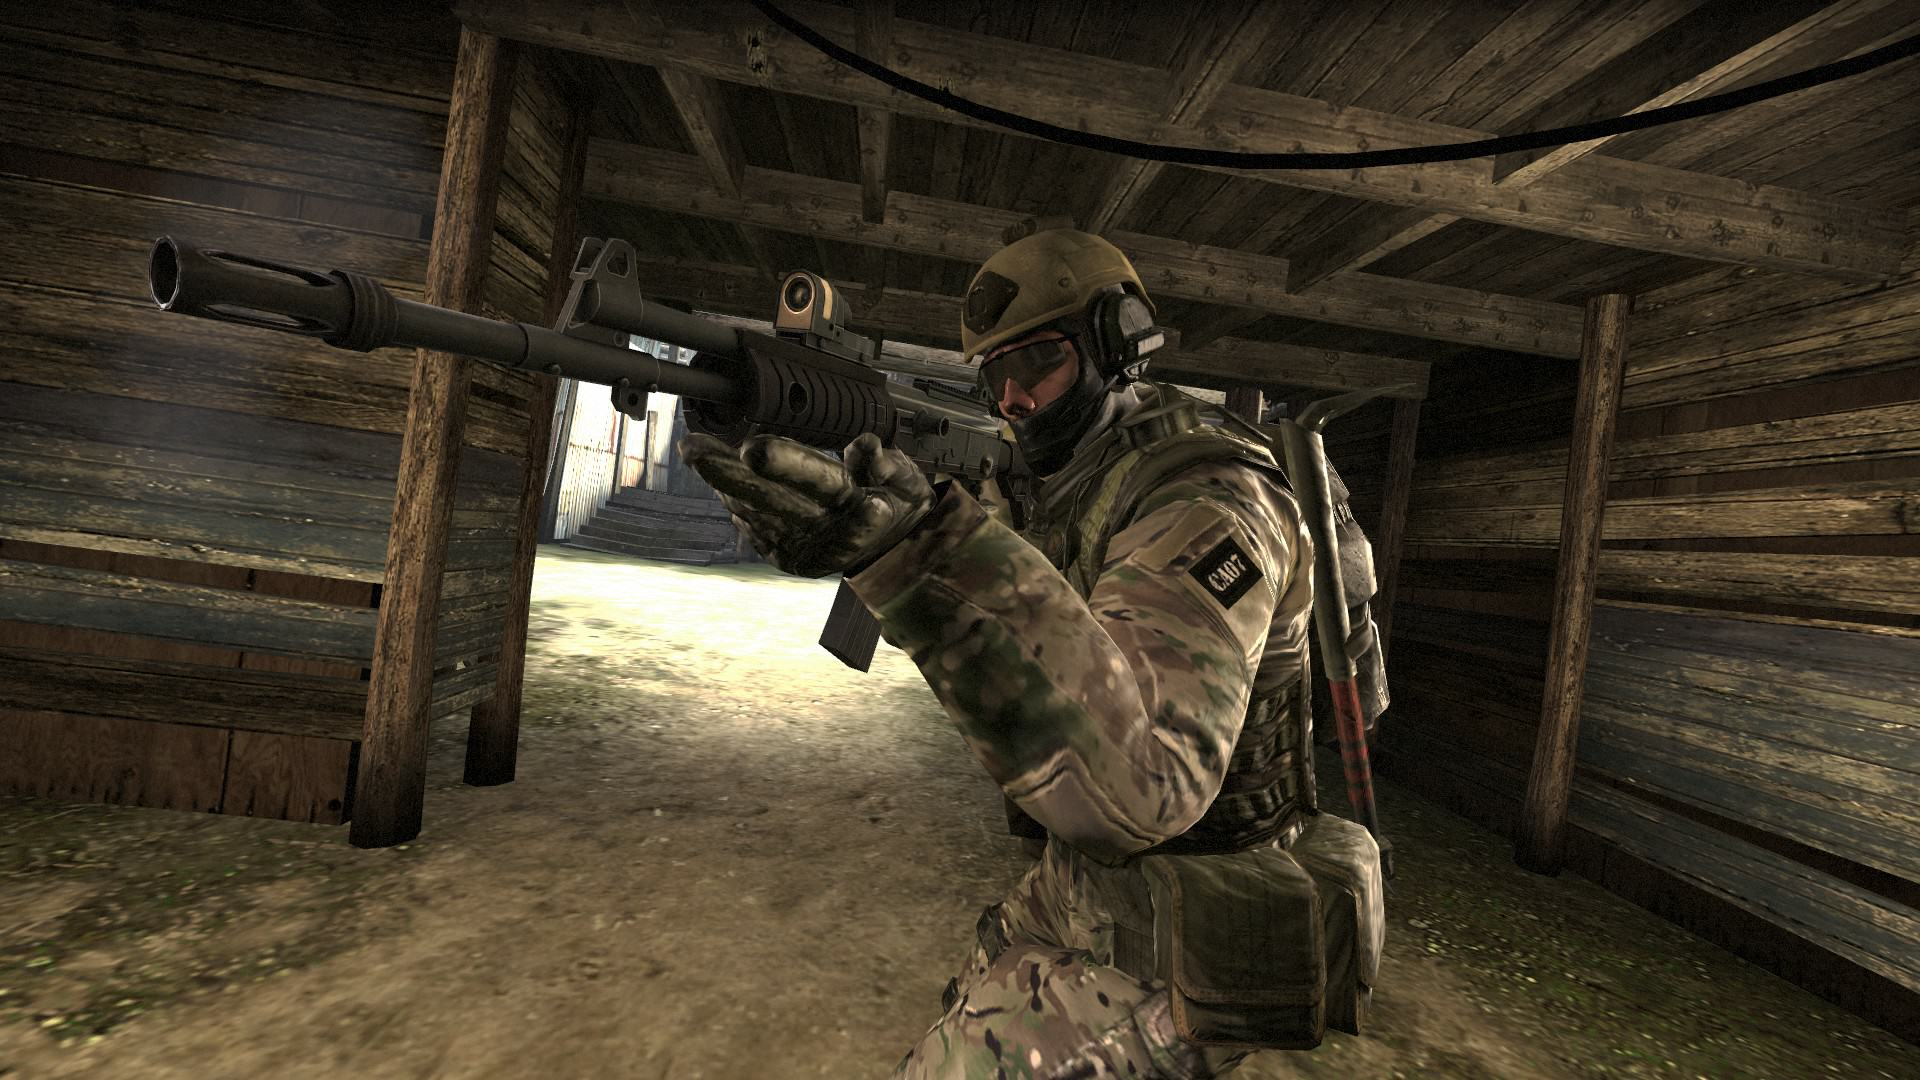 Fan Puts Love/Hate Relationship With Counter Strike Into Song 0c516c21ef560c3e799e2c3409620f7ee41b3f28 1